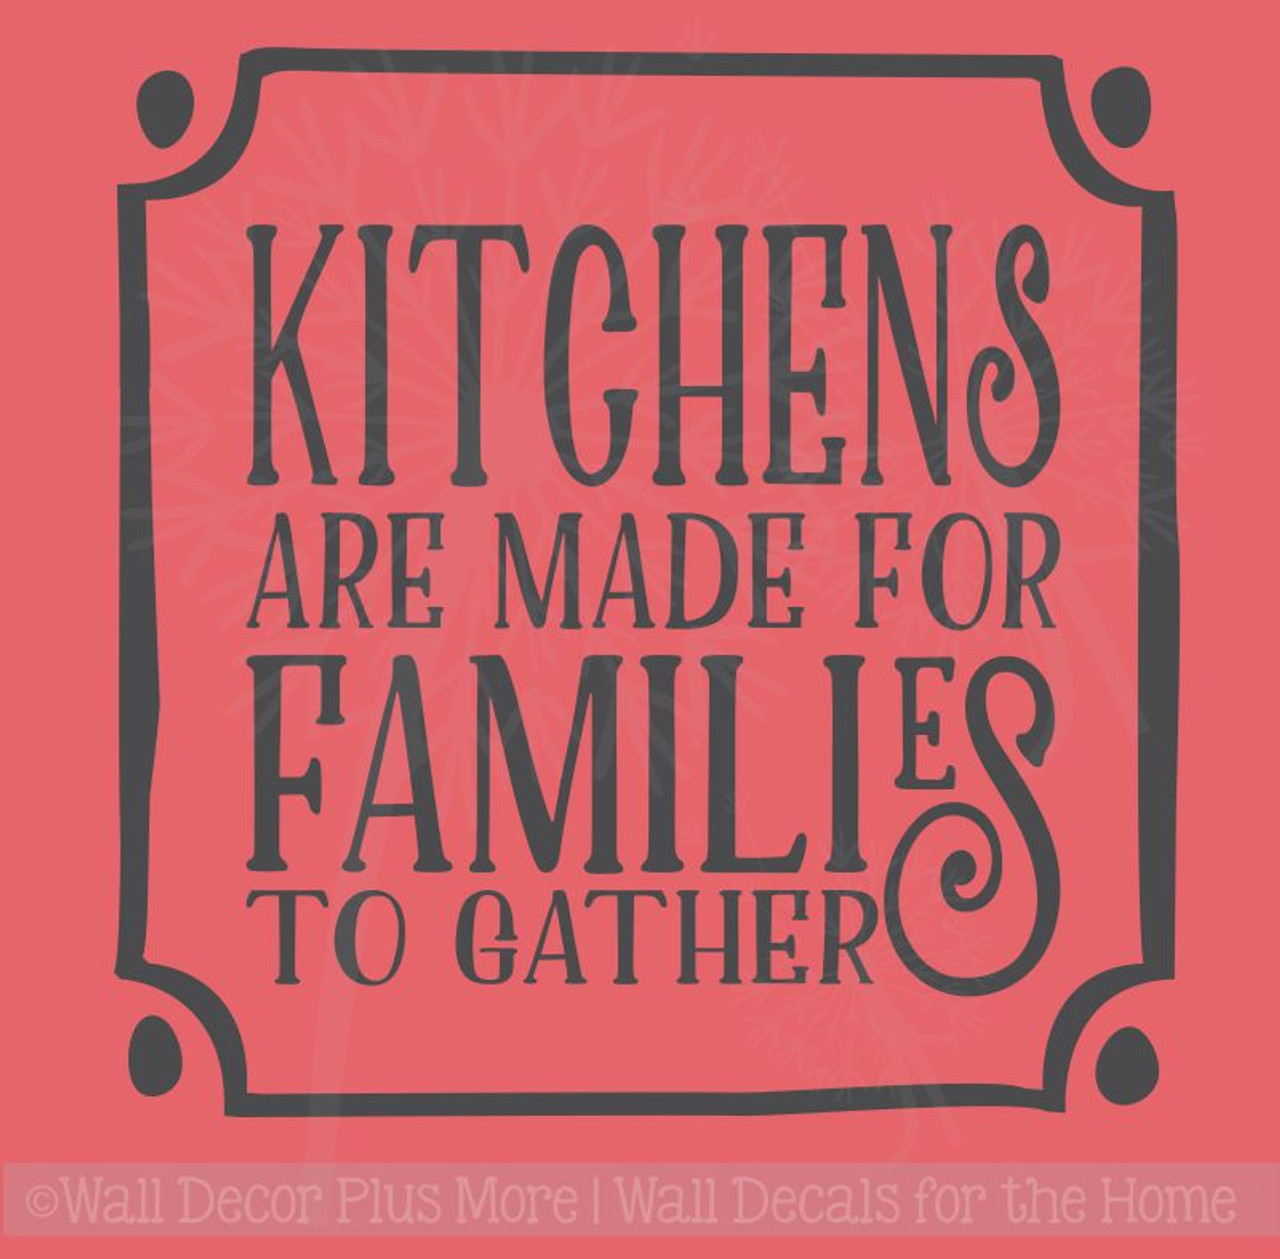 Kitchens Are For Made Families To Gather Removable Wall Decals Kitchen Quotes